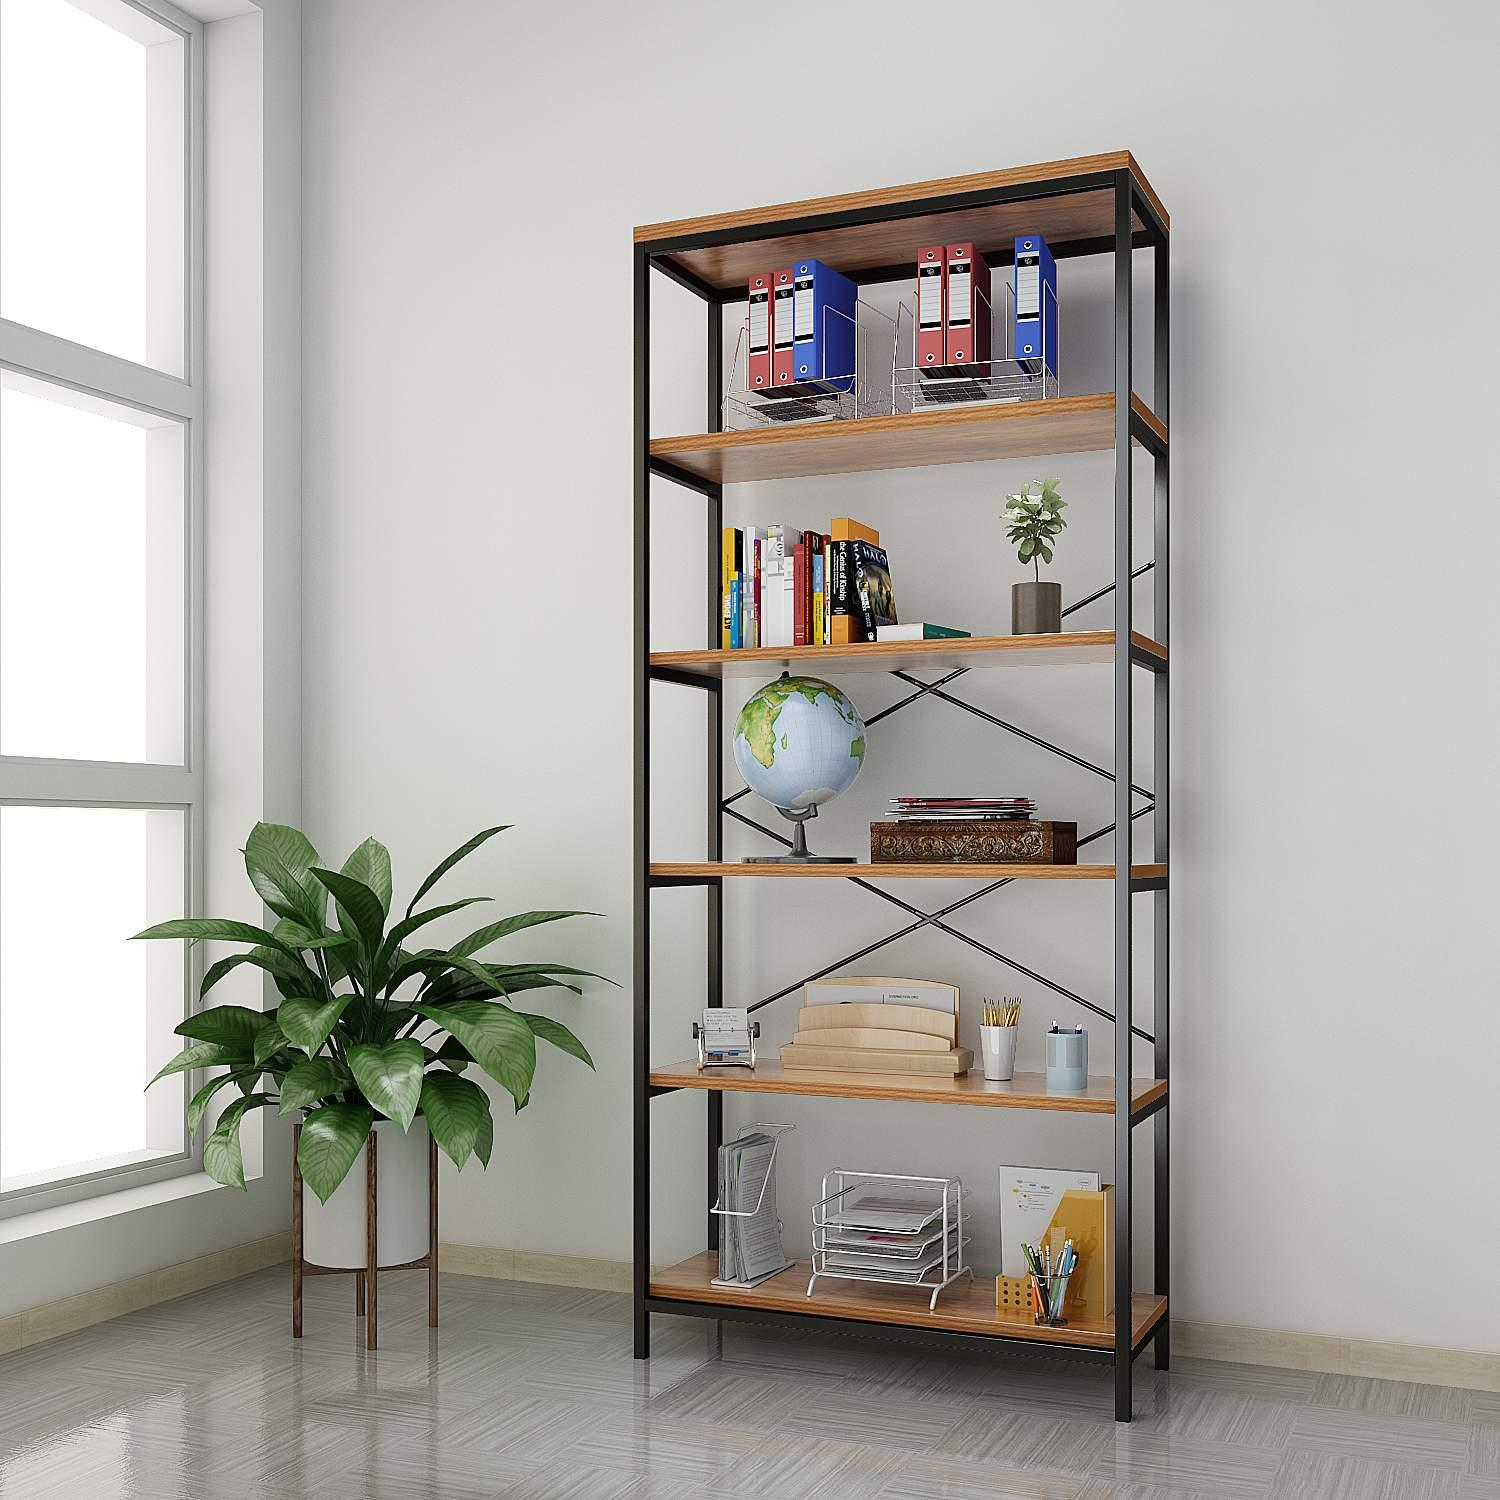 5-Shelf 70in Practical Industrial Style Bookcase and Shelves, Free Standing Storage Shelf Units